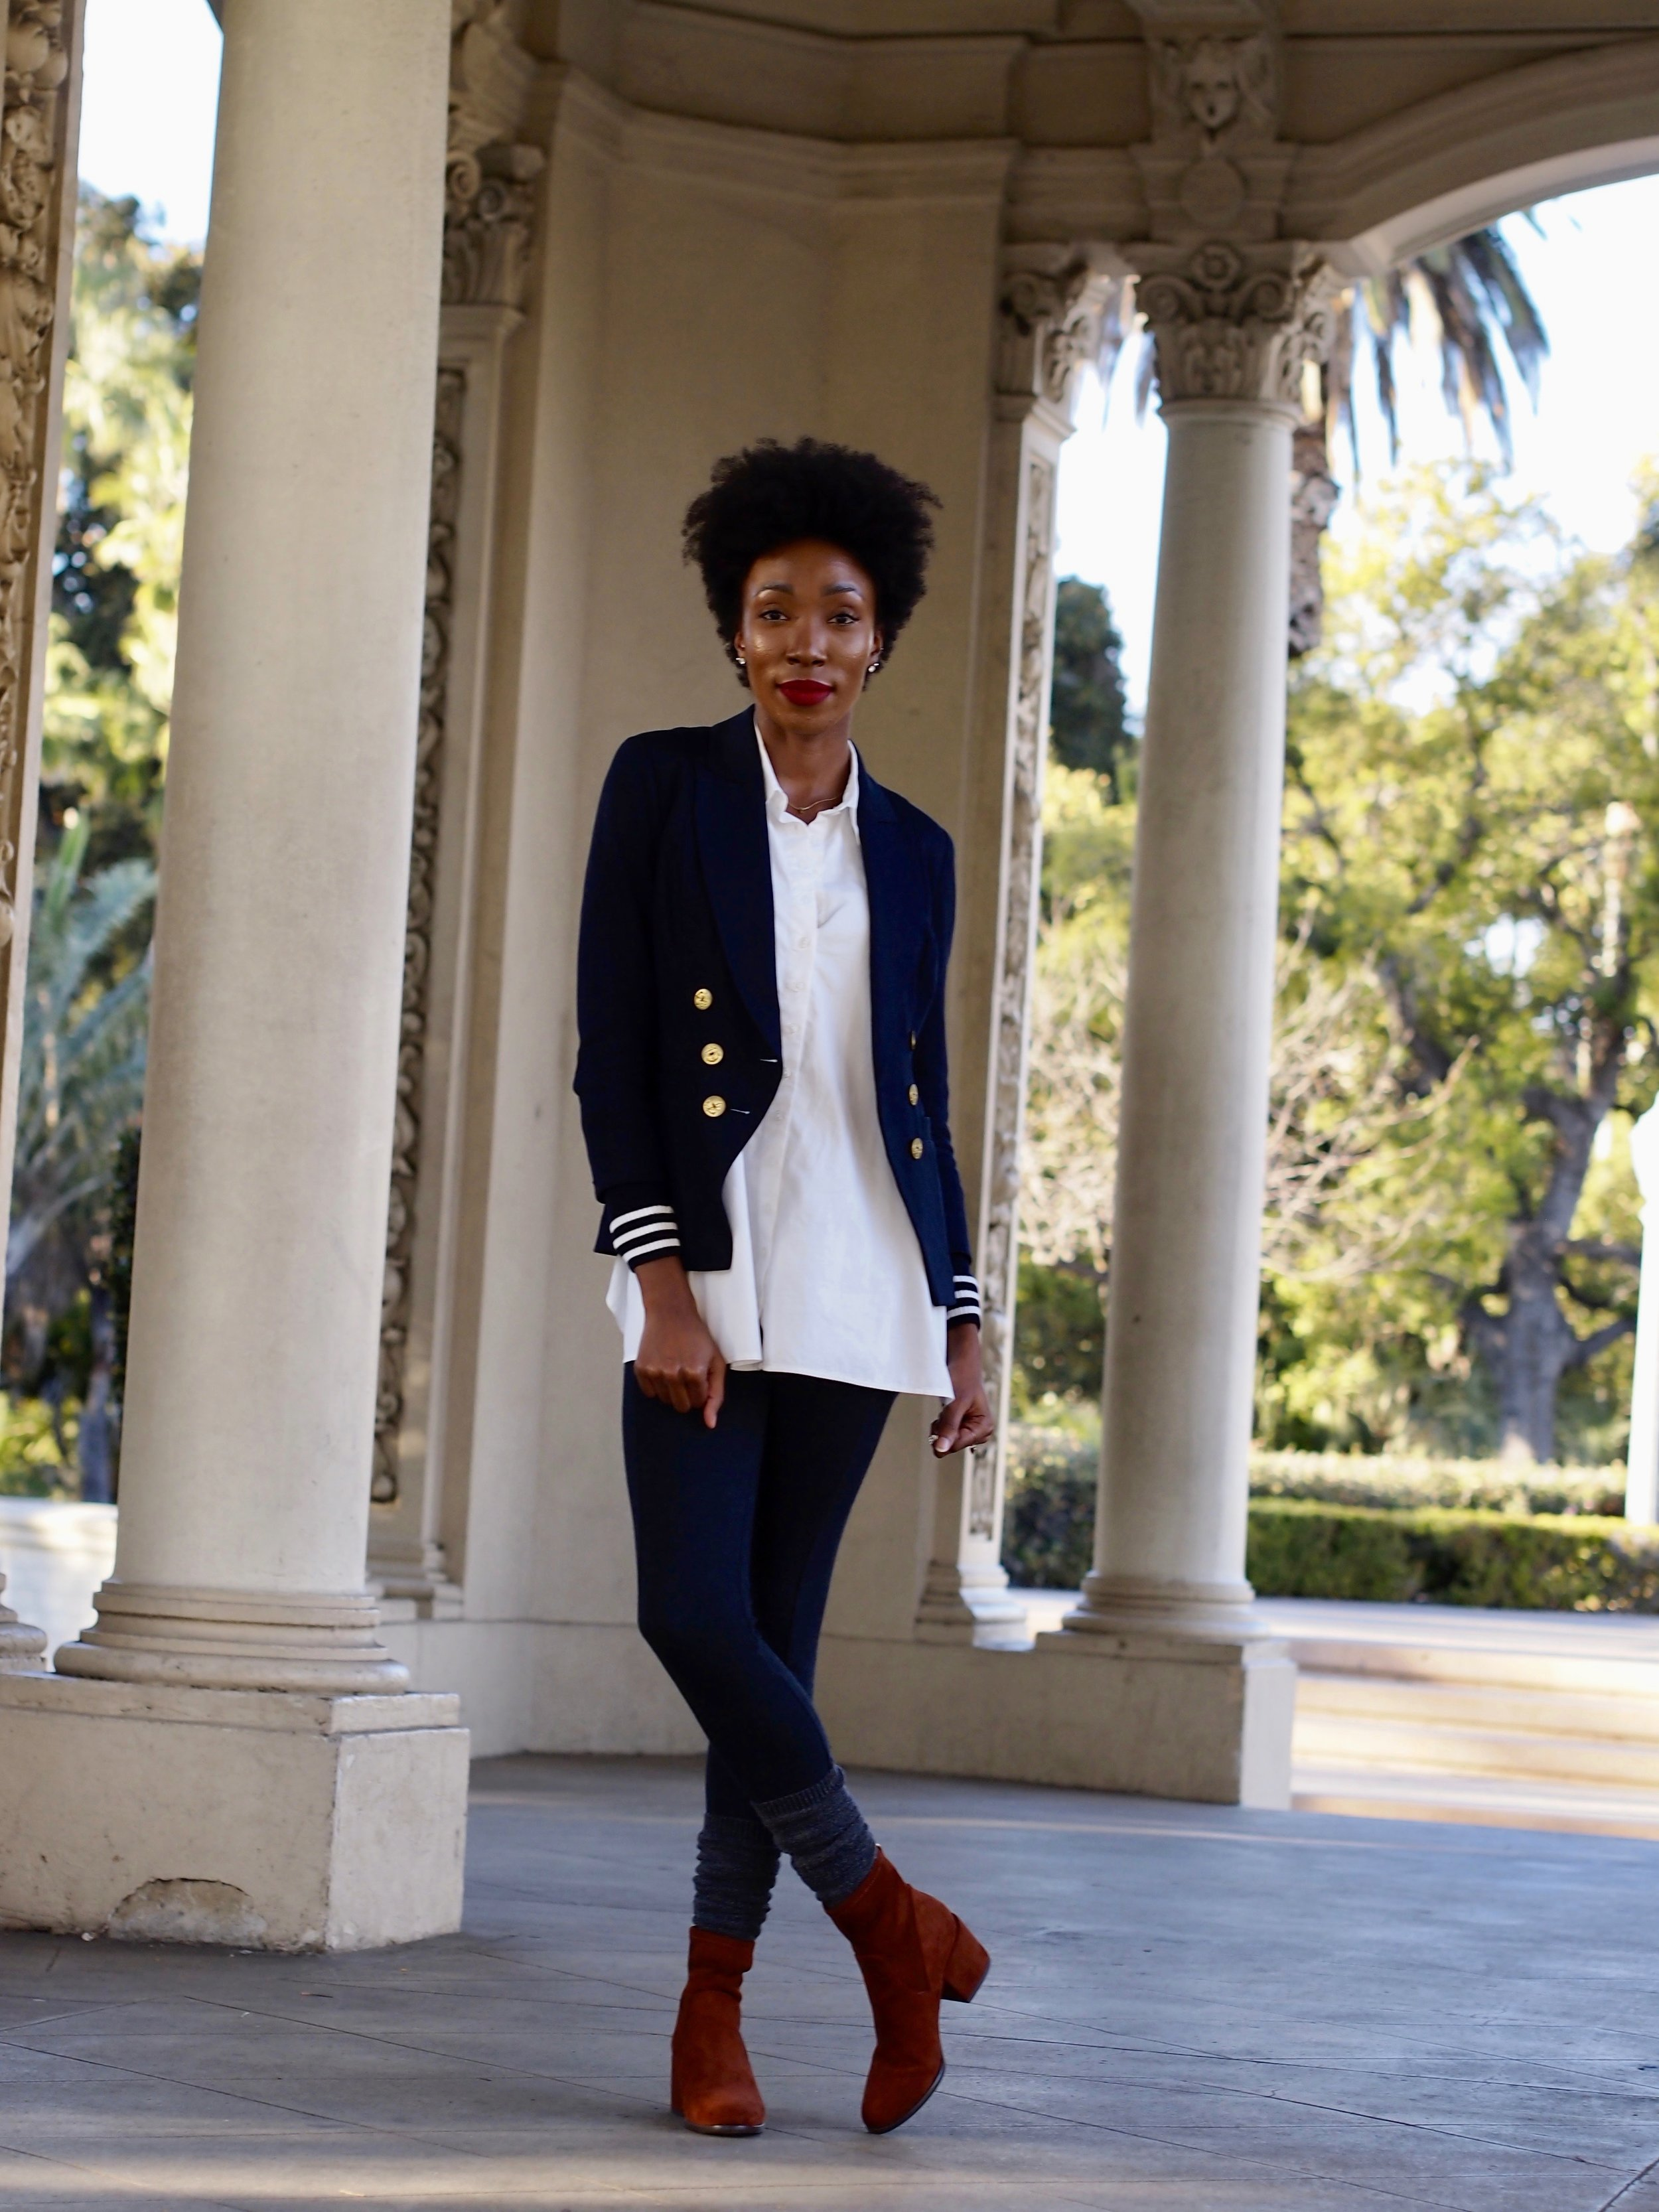 All of my Cabi fans out there know that the Grand Slam Blazer is a Hot item, and I can't get enough of it. It can be dressed up or dressed down and is amazing for any occasion.  Details:  Blazer, Button up and leggings:  Cabi   Socks: Target  Boots: H&M ( Similar )